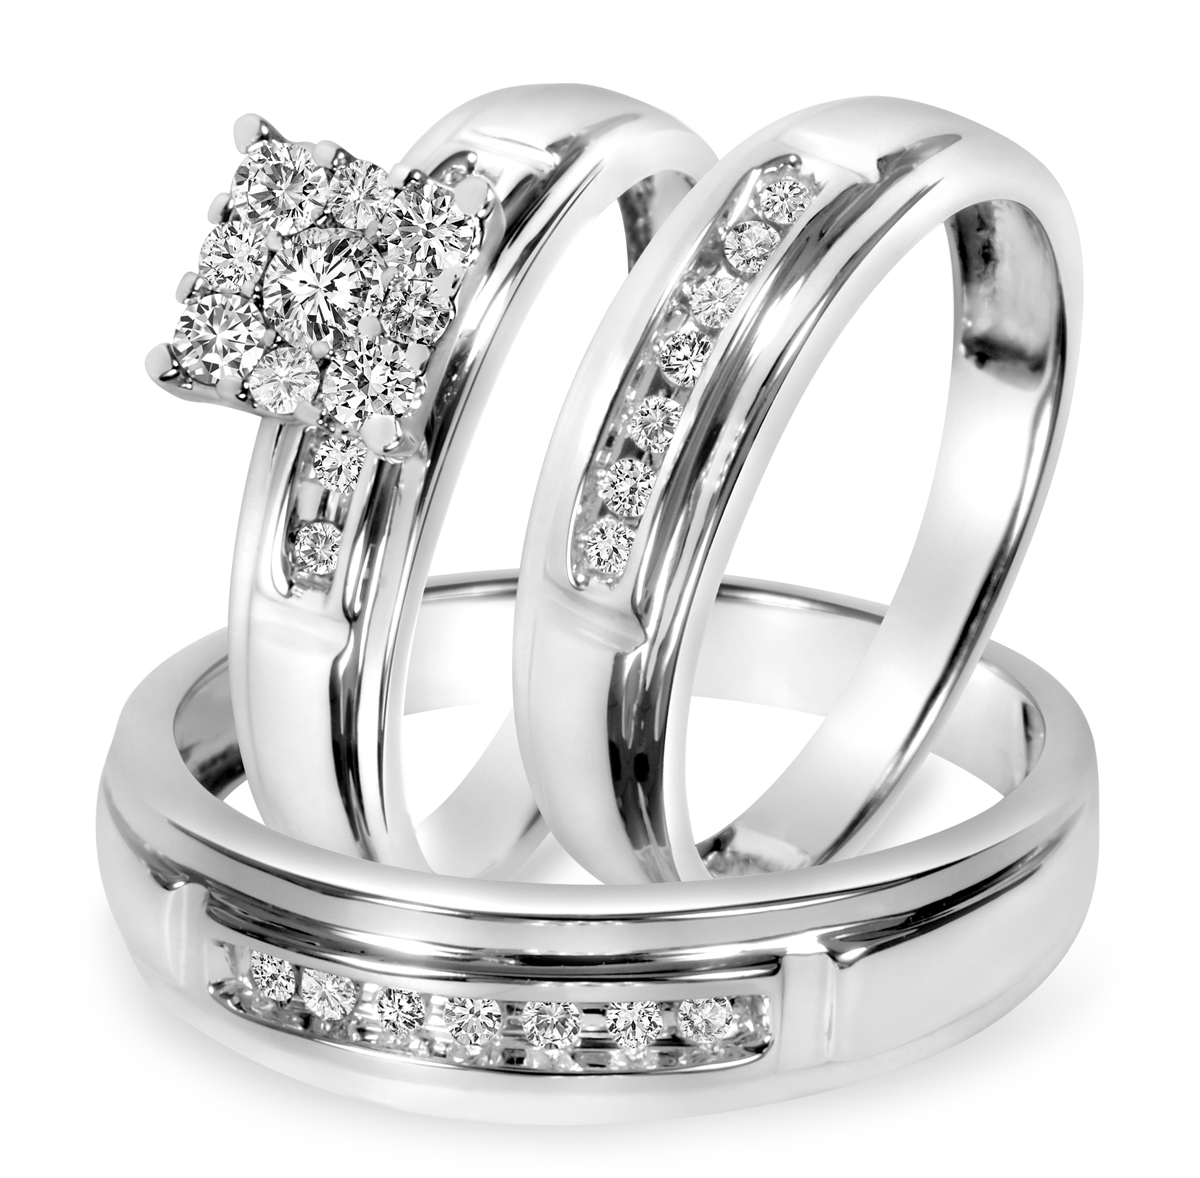 cushion cubic zirconia sterling silver 2pc halo bridal ring set 46 ct jewelry r cl wedding rings set Sterling Silver Cushion CZ Halo Ring Set 0 CTW